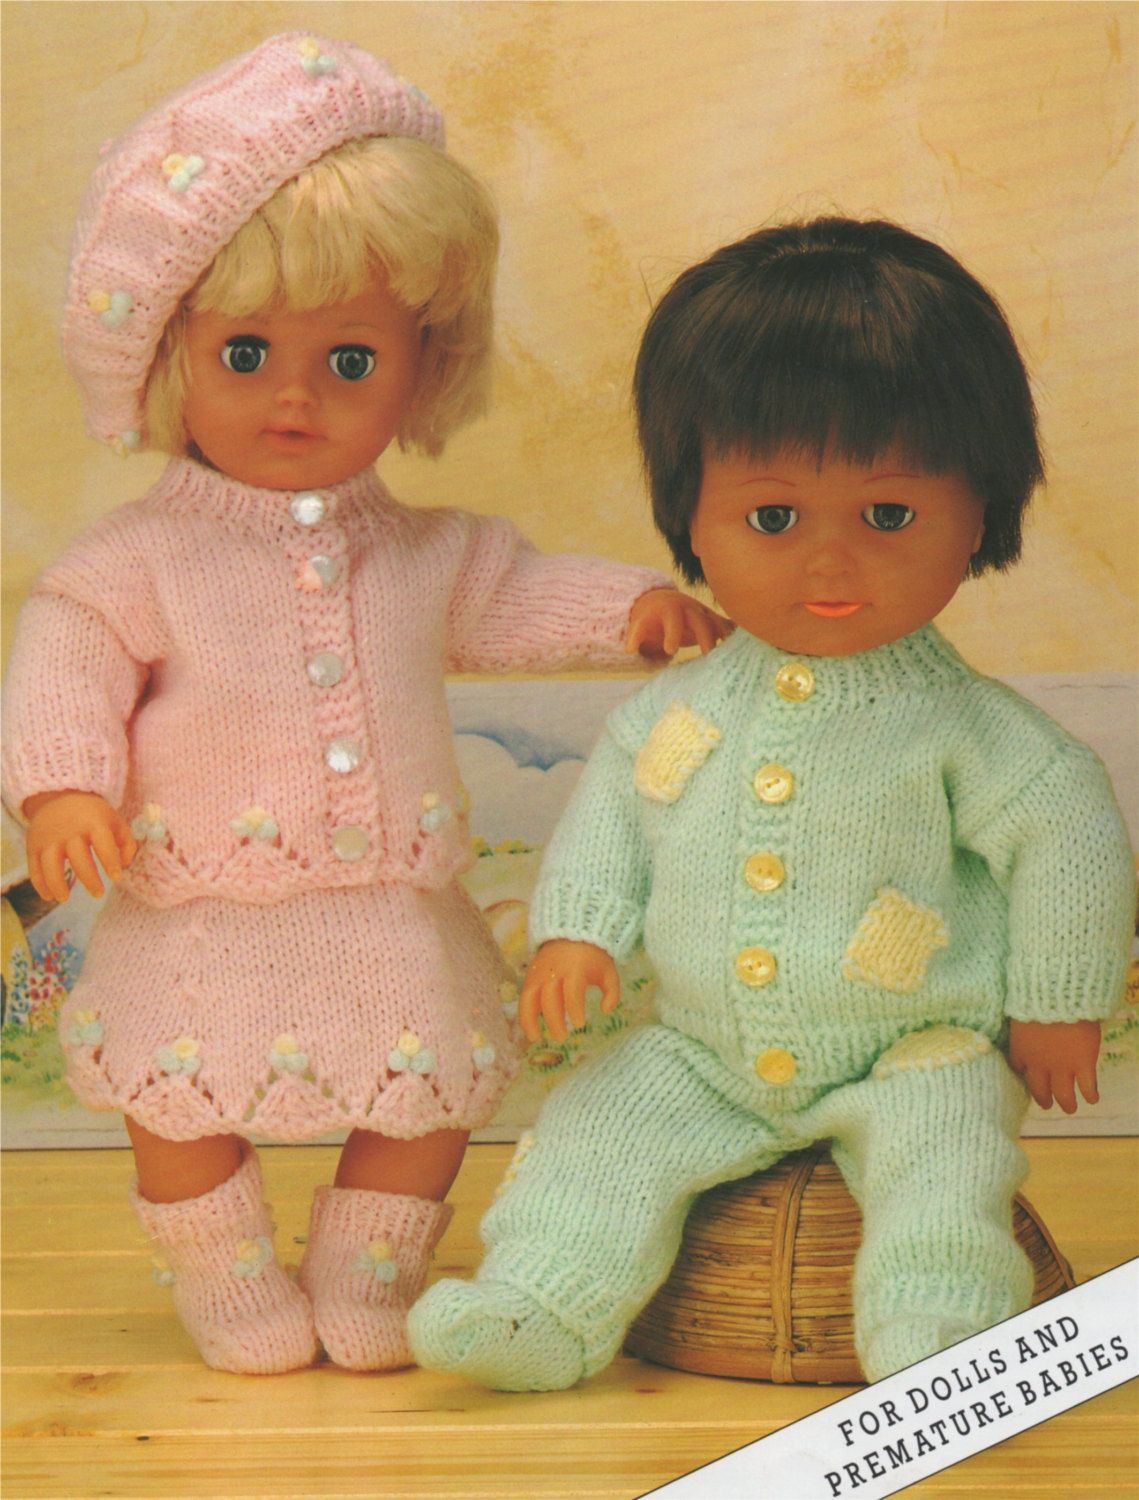 Dolls Clothes Knitting Pattern Pdf For 12 16 And 20 Inch Doll Baby Dolls Outfit Pattern Vintage Knitting Patterns For Dolls Download Baby Doll Clothes Patterns Baby Doll Clothes Doll Clothes